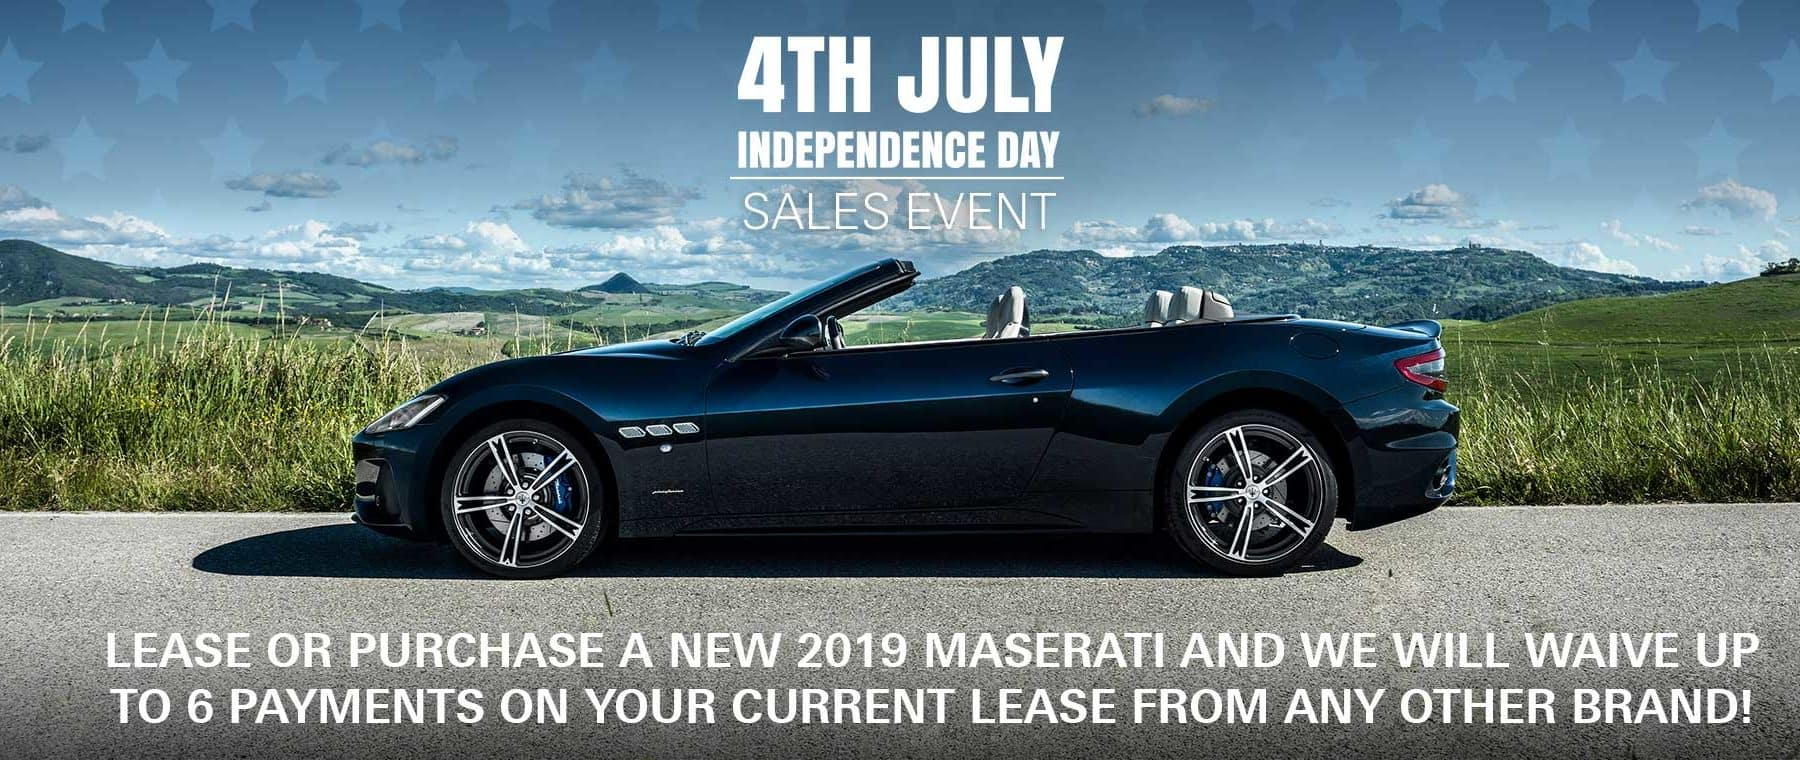 maserati 4rth of July sales event